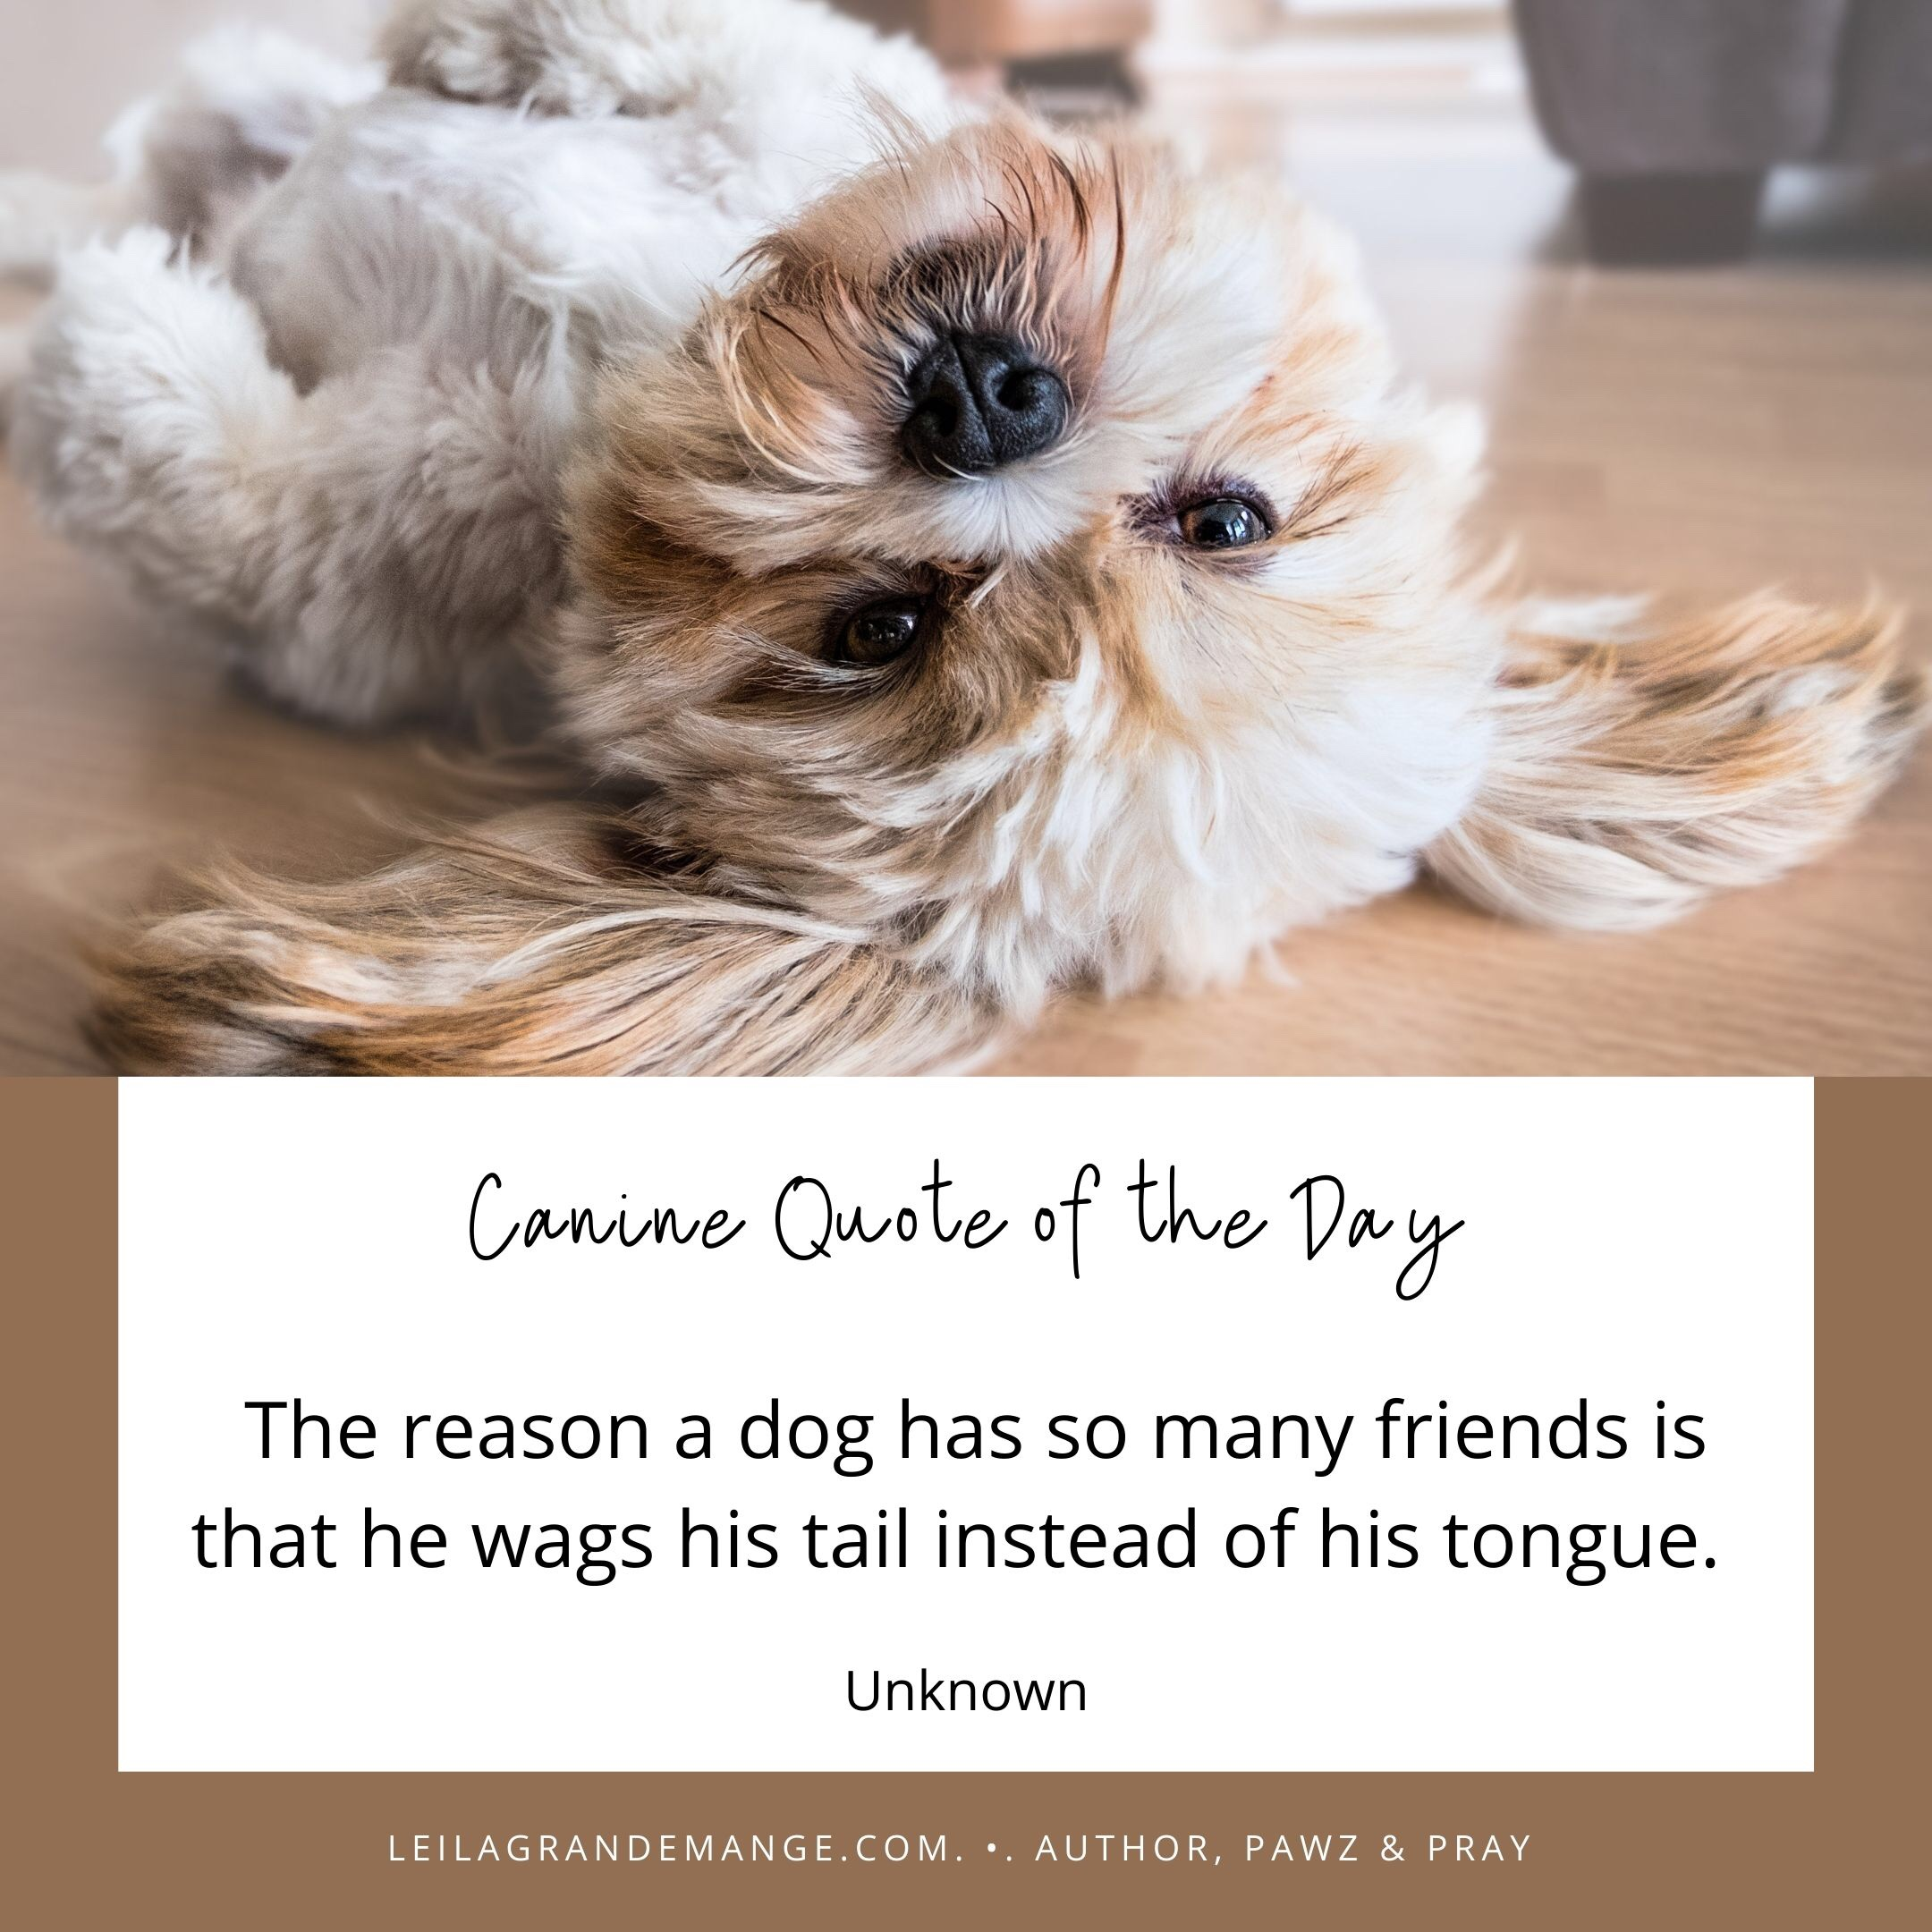 Inspiring Dog Quote [The reason a dog has so many friends…]